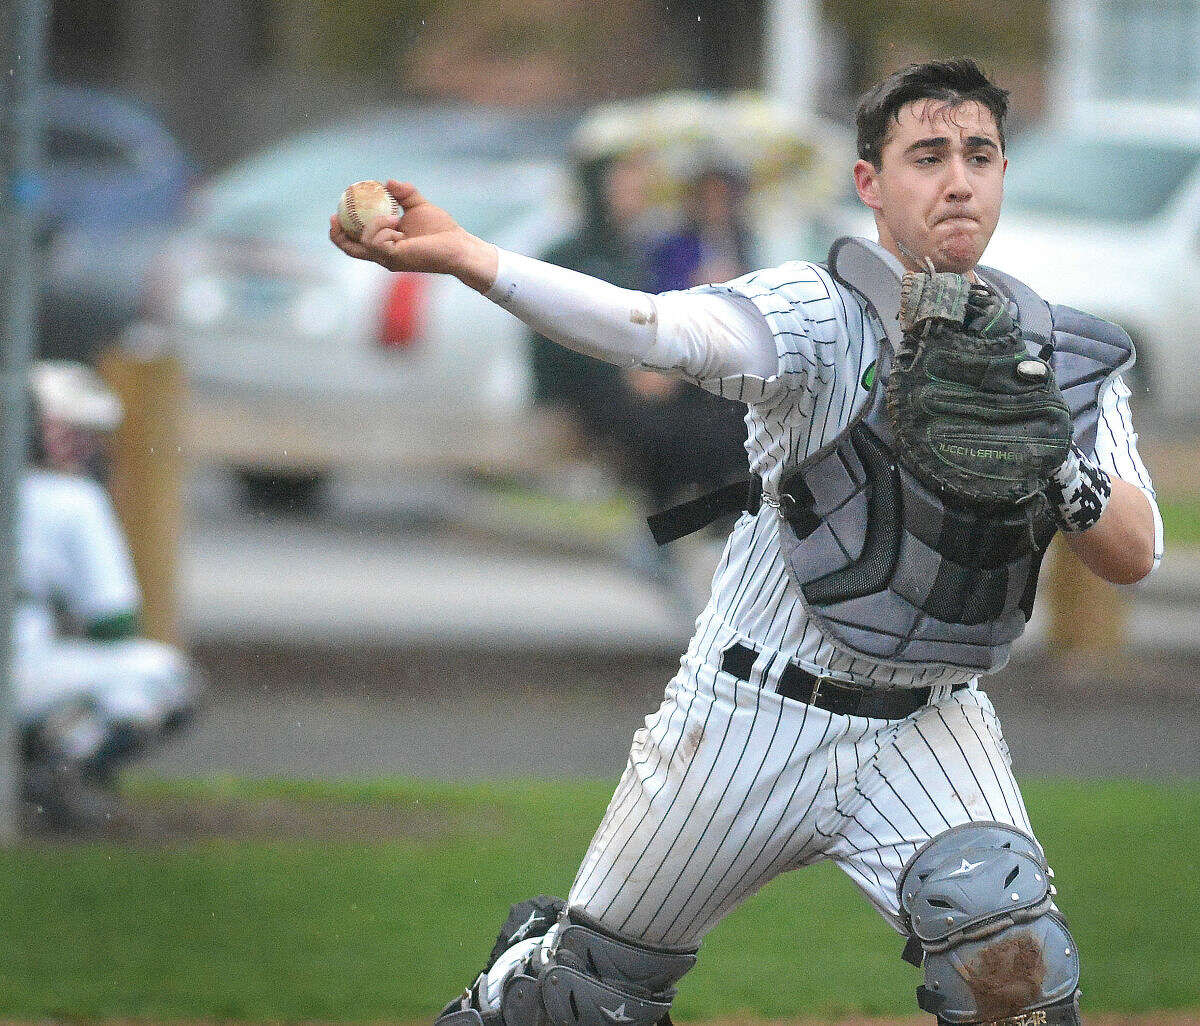 Norwalk's Marco Montiero makes the throw to first for an out on Wednesday against Bridgeport Central. (Alex von Kleydorff/Hour photo)